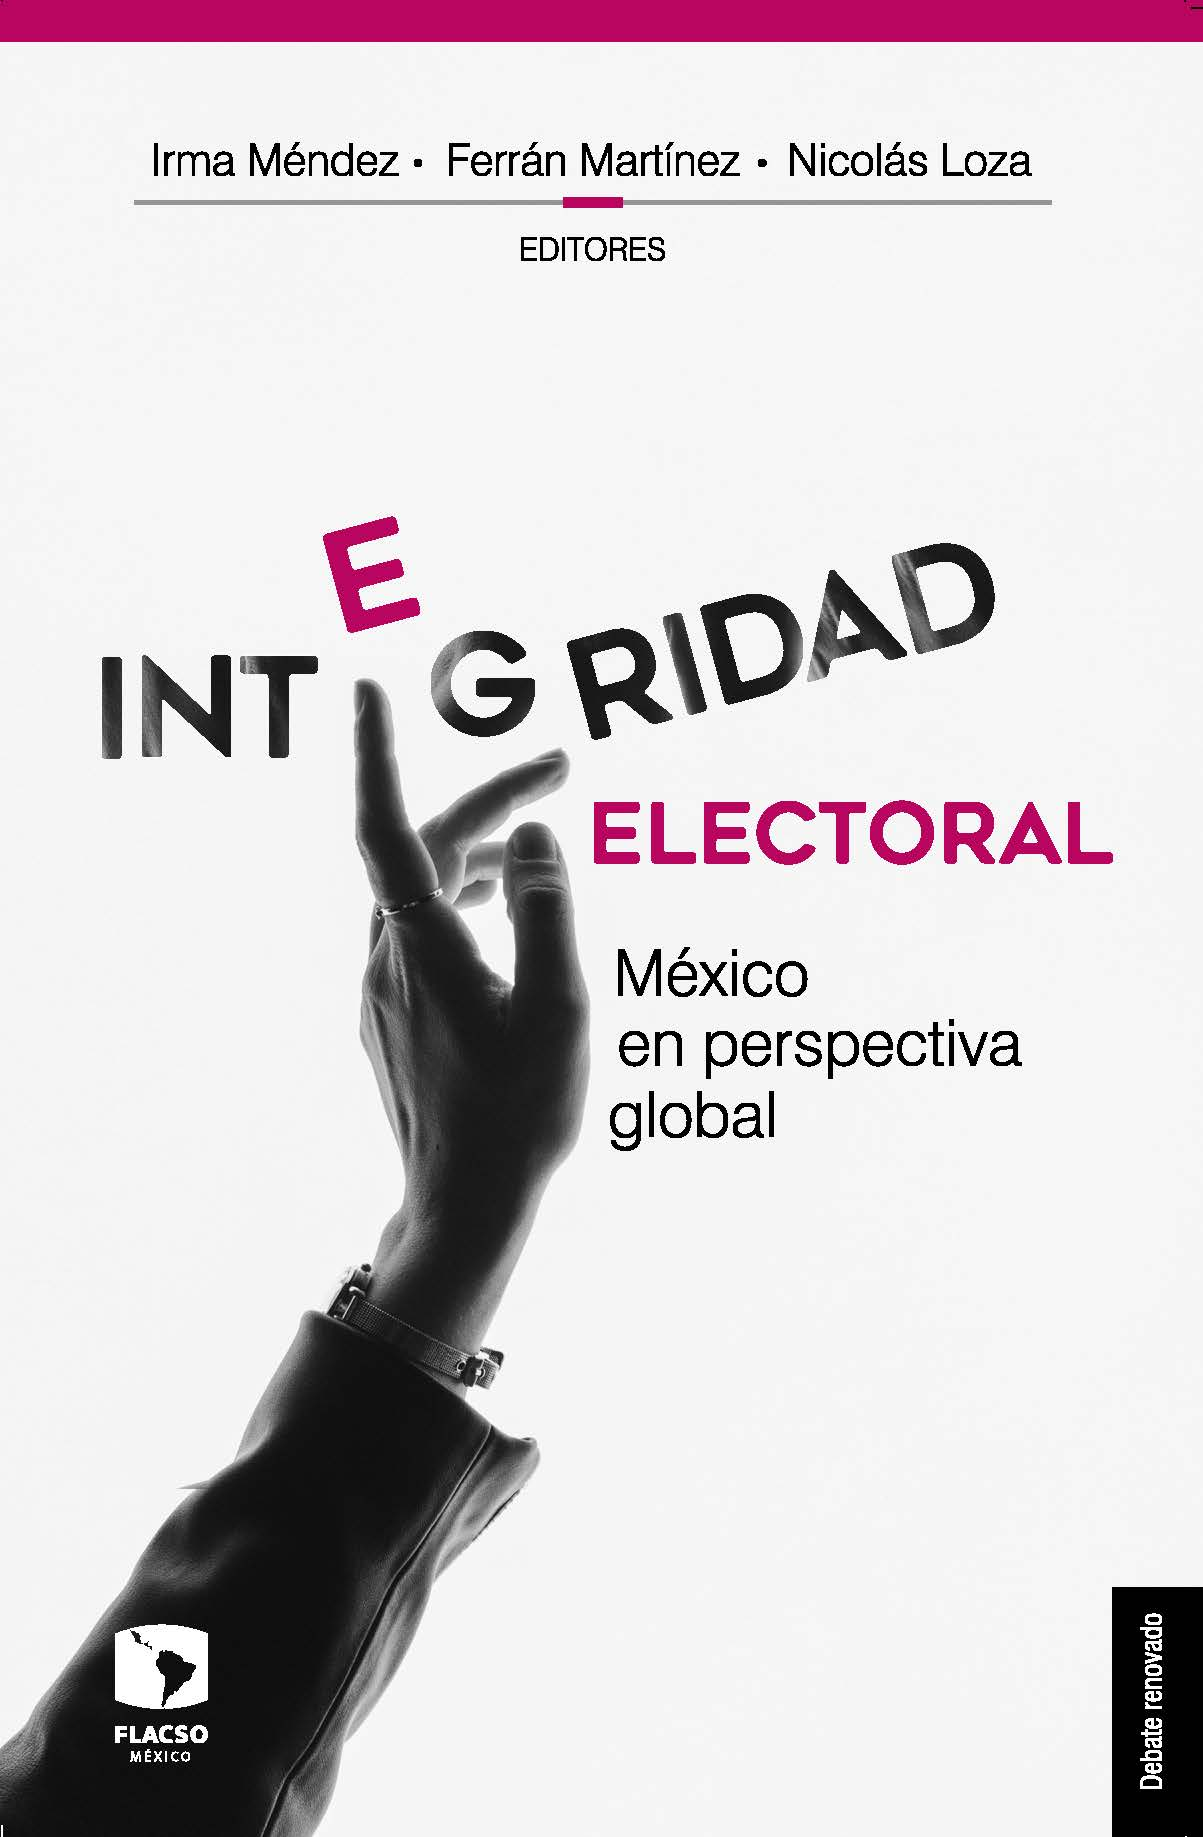 Integridad electoral. México en perspectiva global